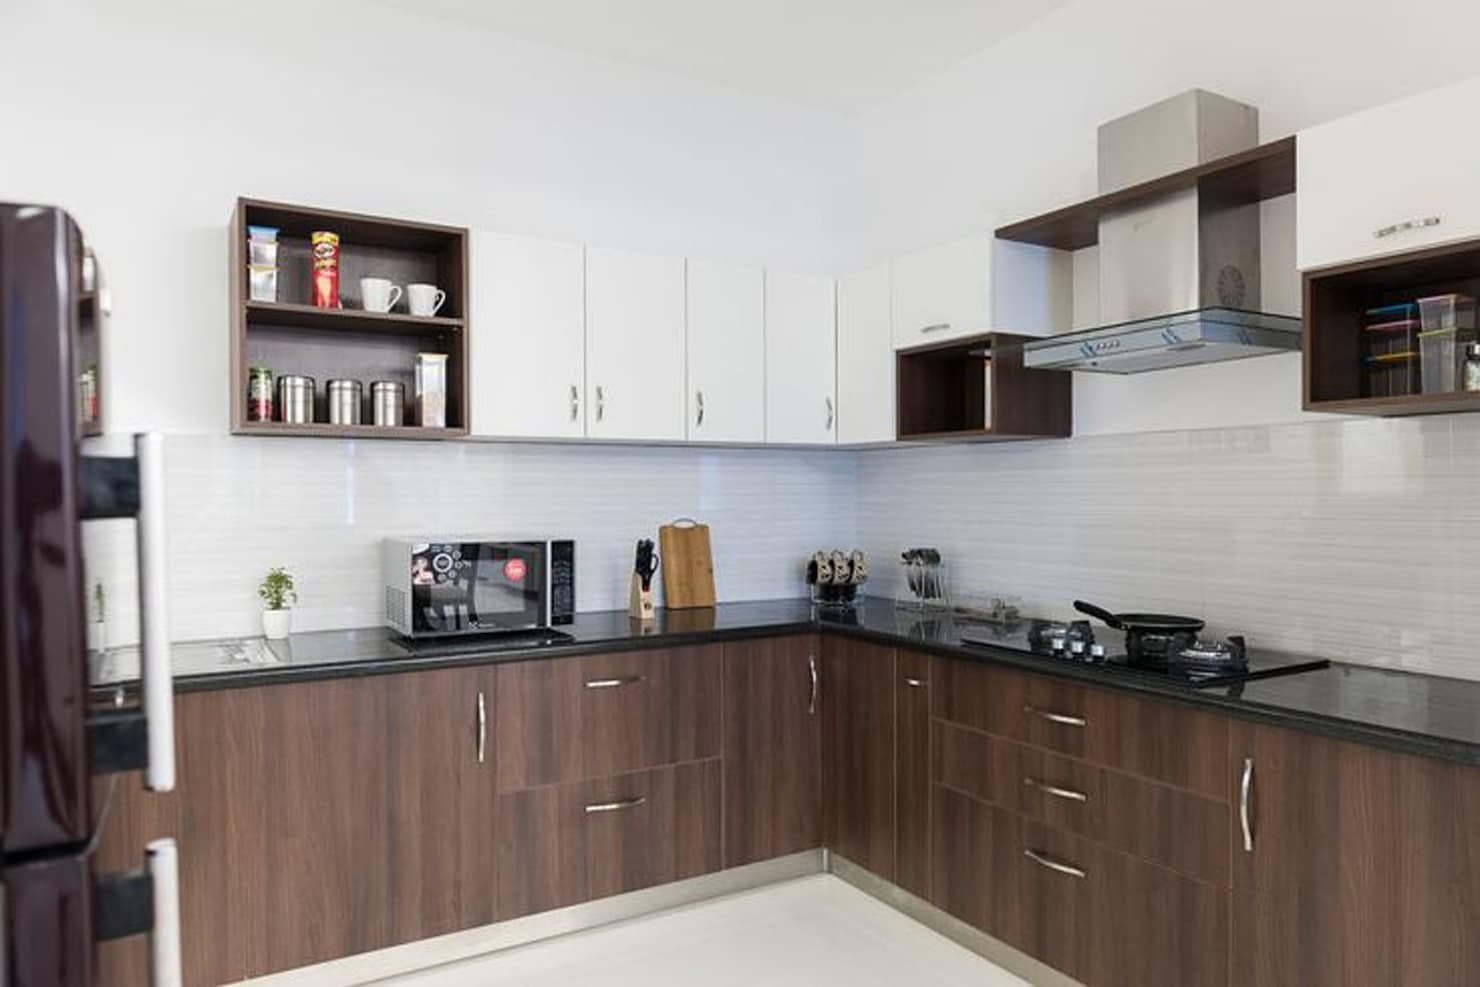 Completed modular kitchen designs by homelane.com classic ...